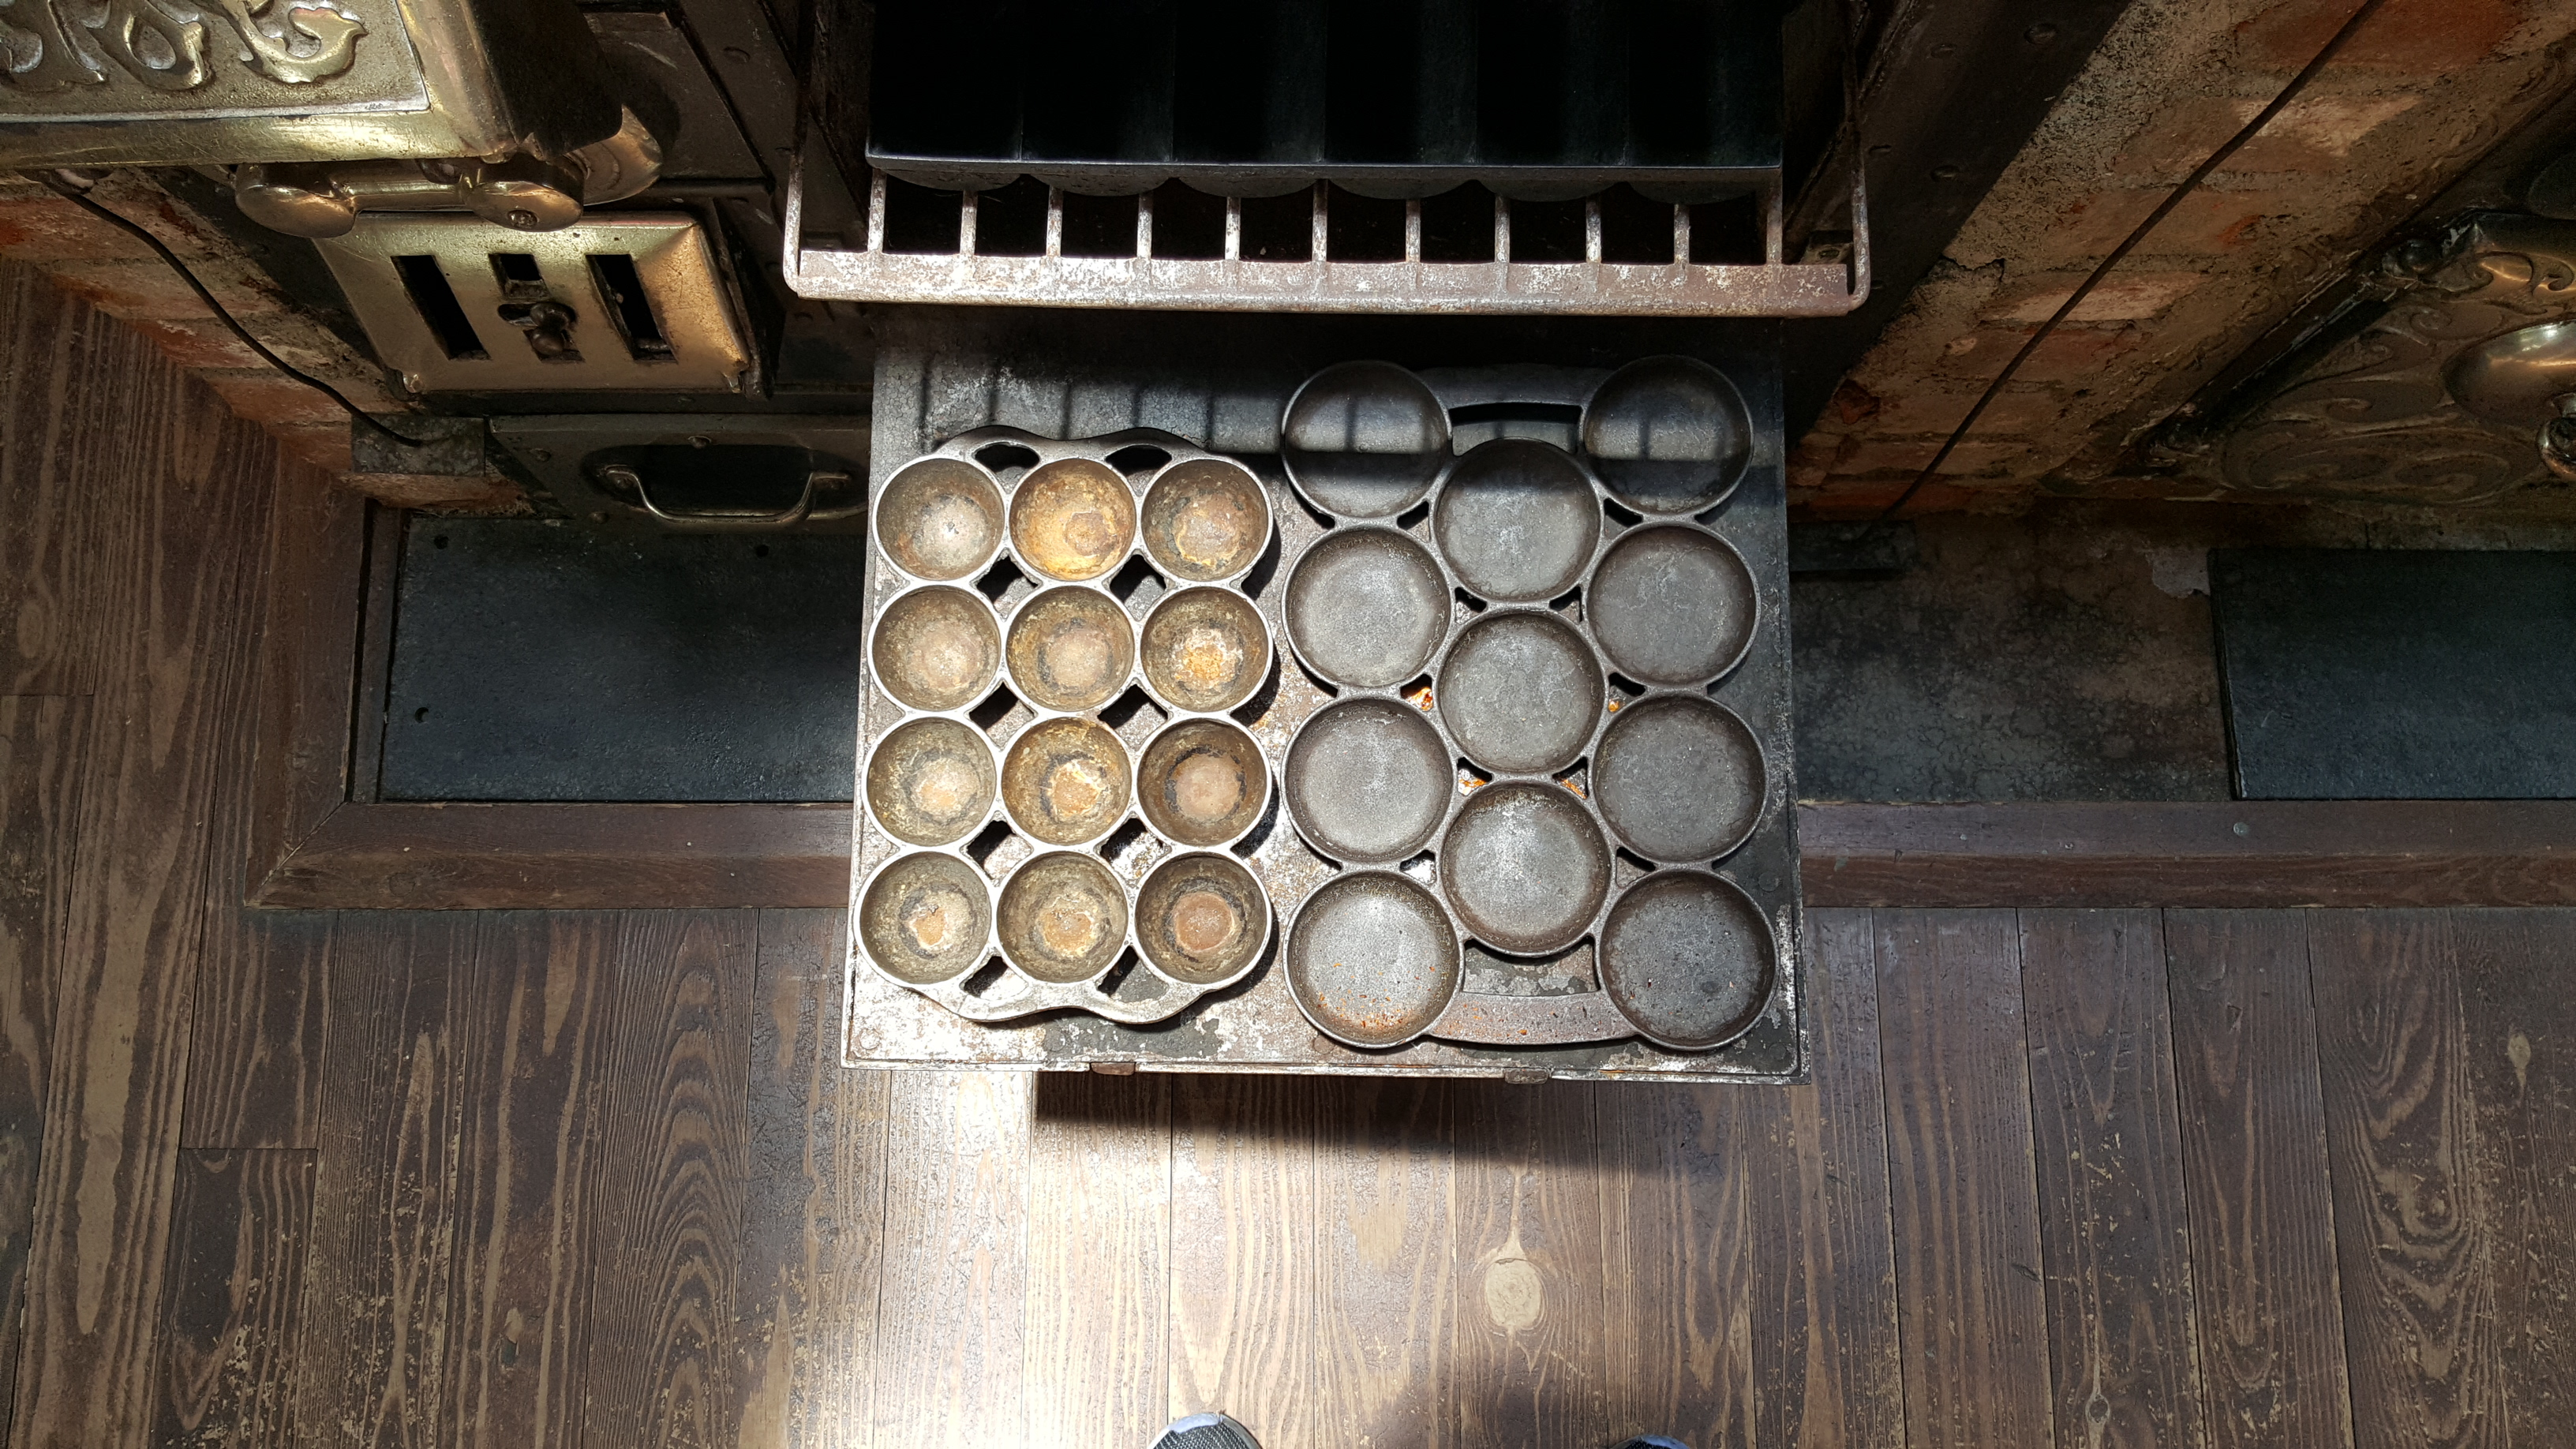 Inside Louis Dupuy's kitchen. A view down at the (not original) stove.